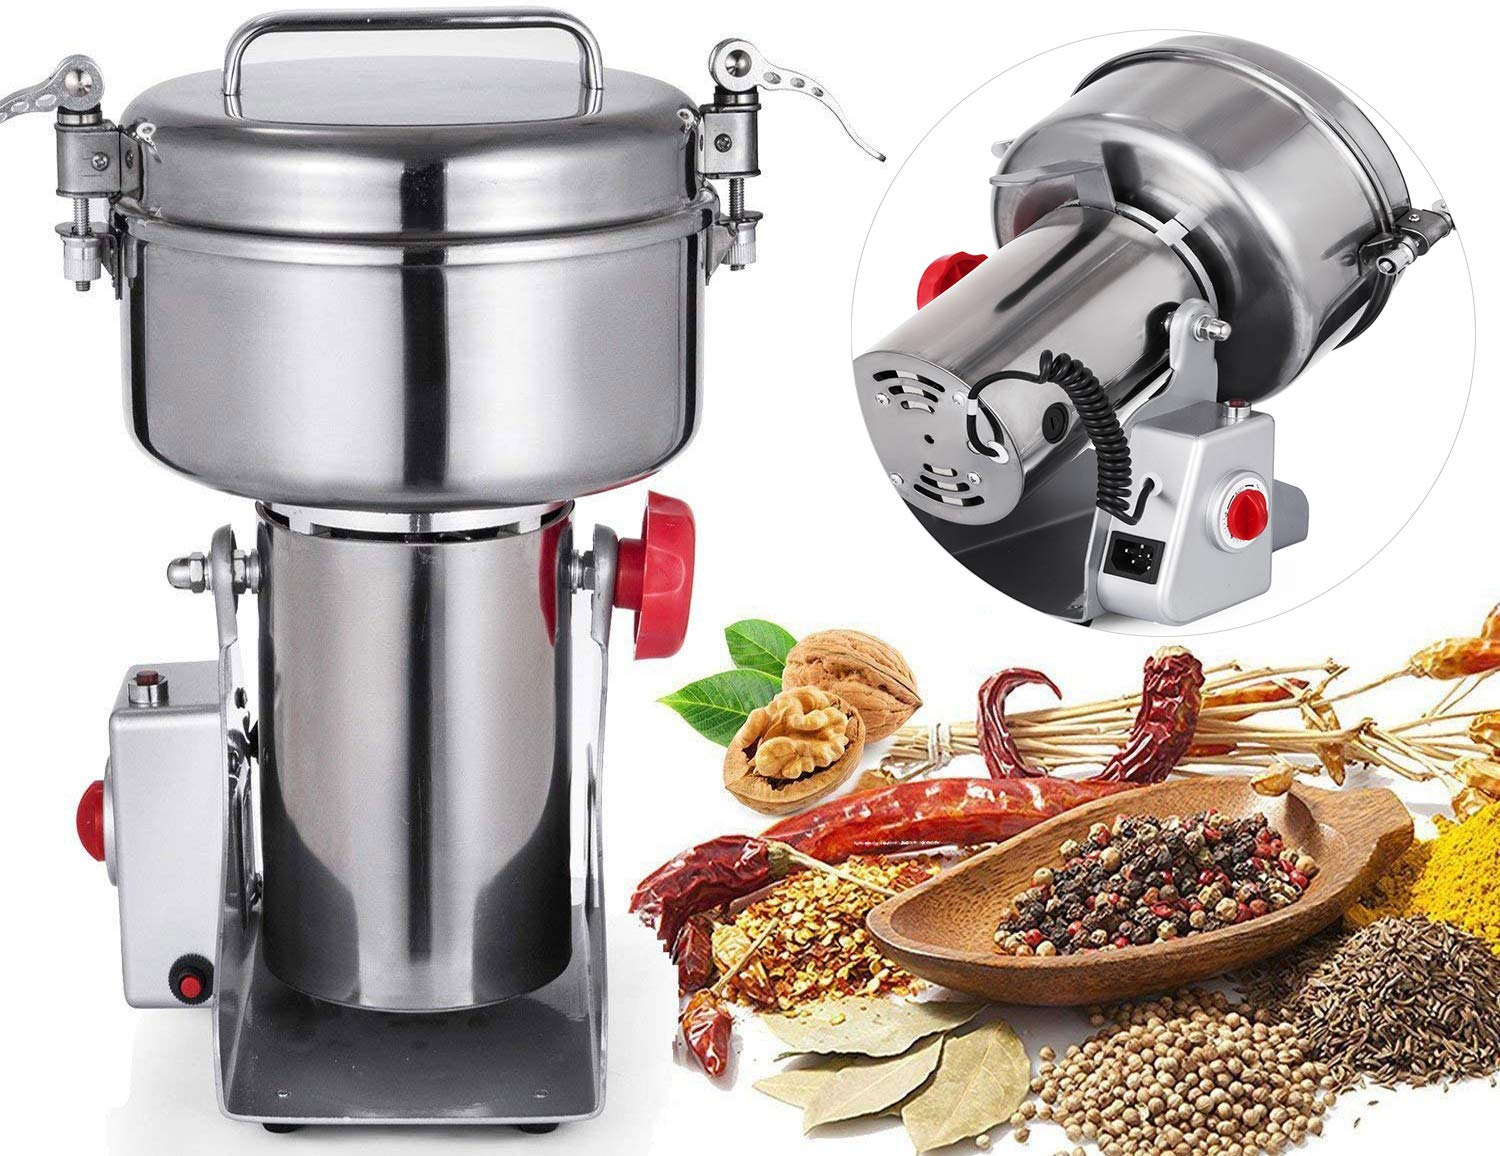 Mophorn Electric Grain Grinder 1000g Food Grade Stainless Steel Swing Type for Kitchen Herb Spice Pepper Coffee Pulverizer Grinding Machine 2500W Mill Powder 50-300 Mesh, 1000g, 1000g by Mophorn